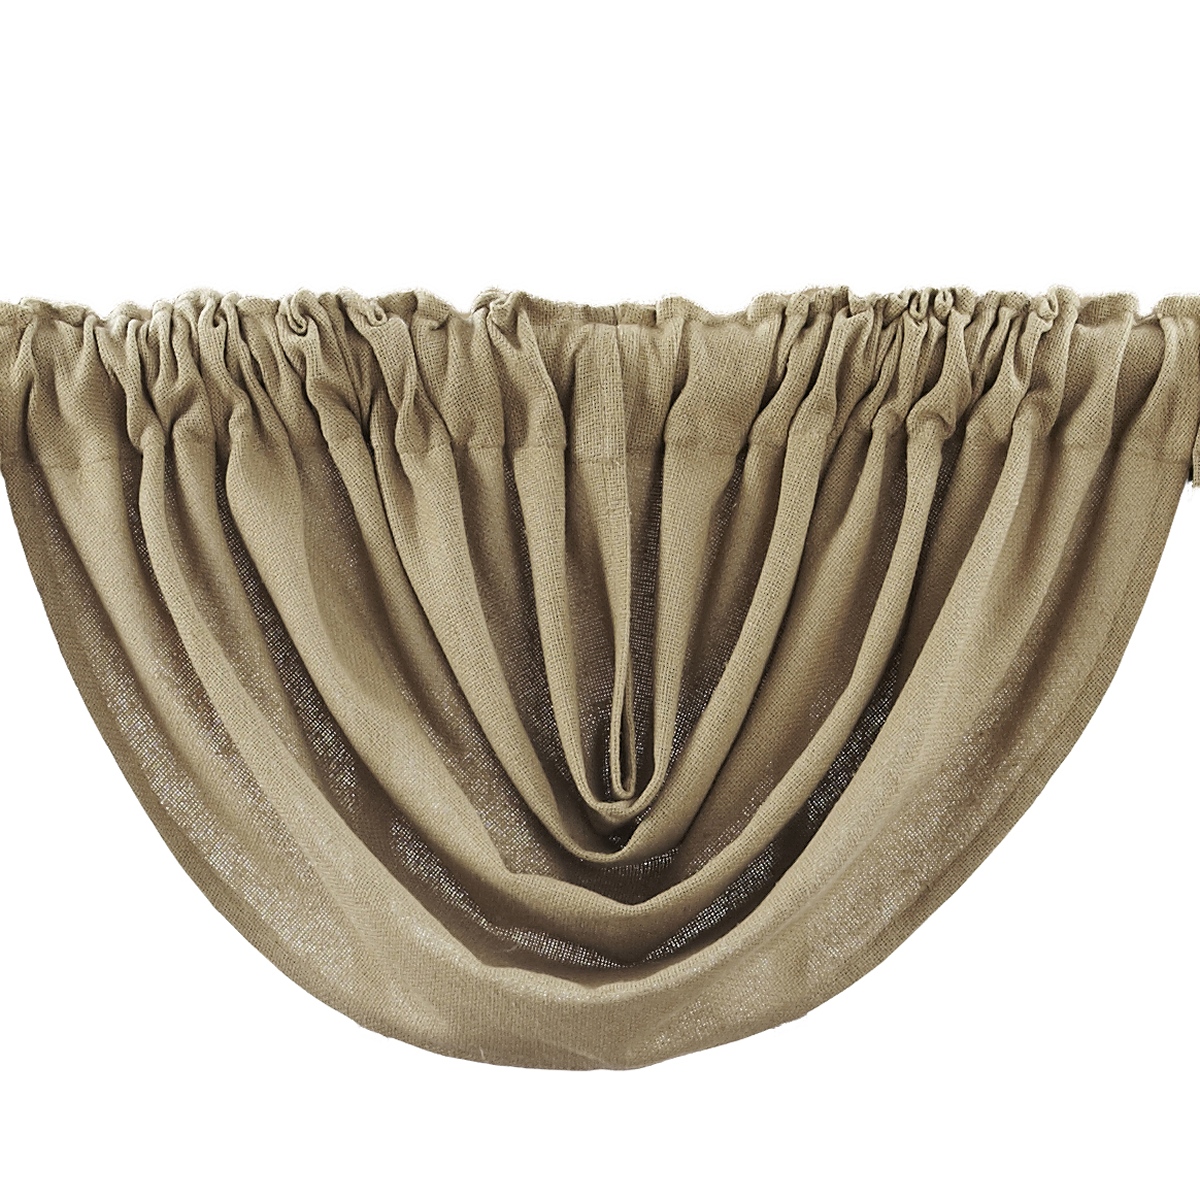 BURLAP NATURAL Balloon Valance - 60x15 - Country Farmhouse Style - VHC Brands